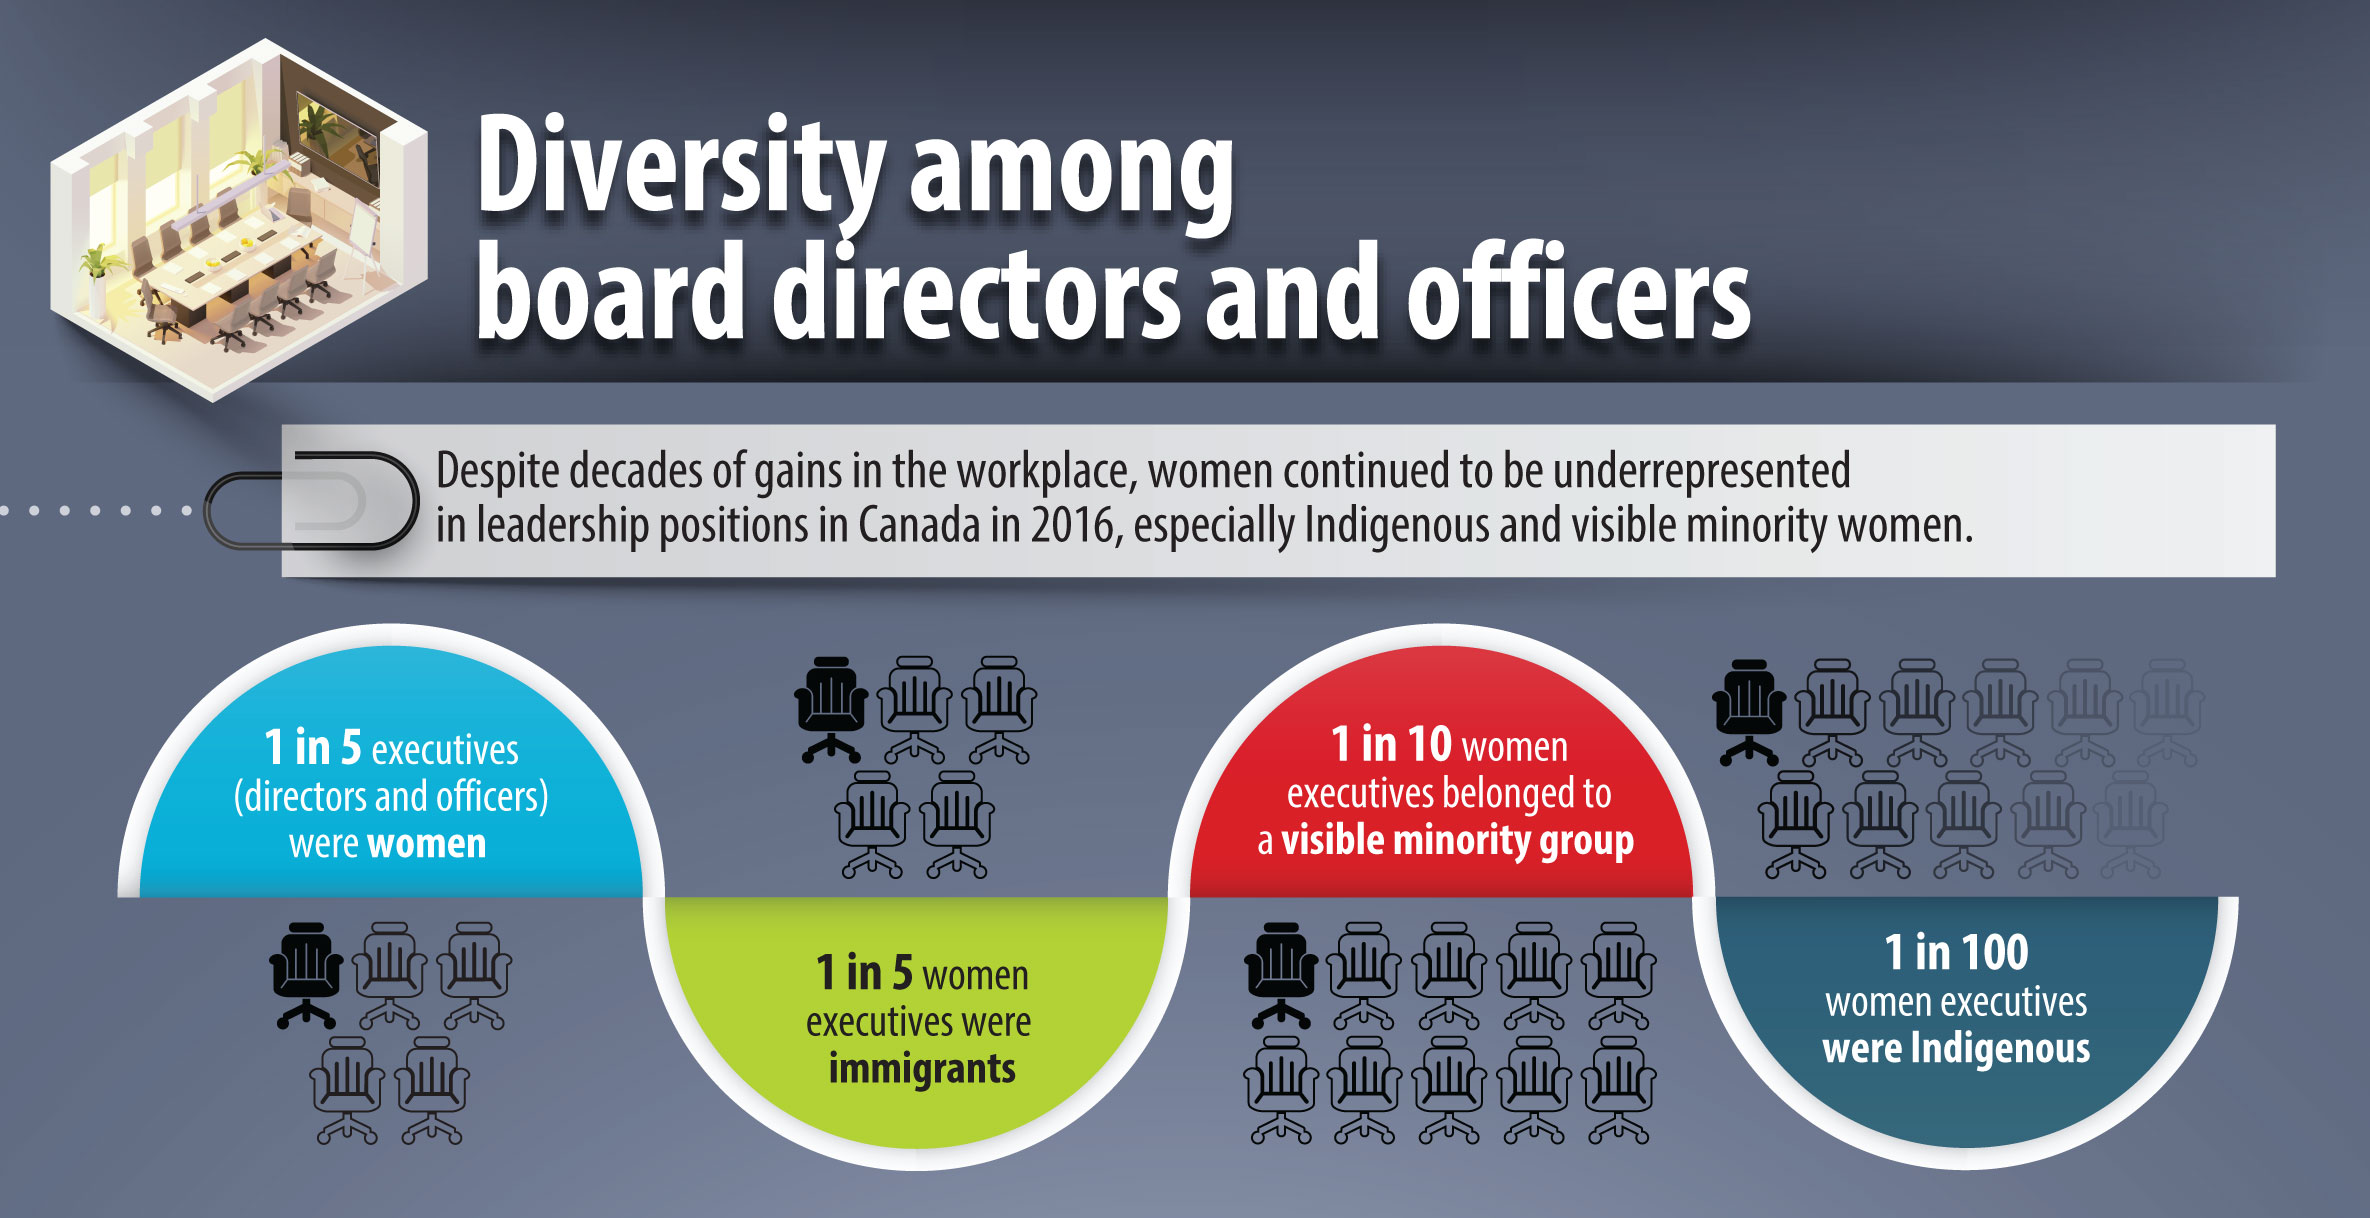 Diversity among board directors and officers